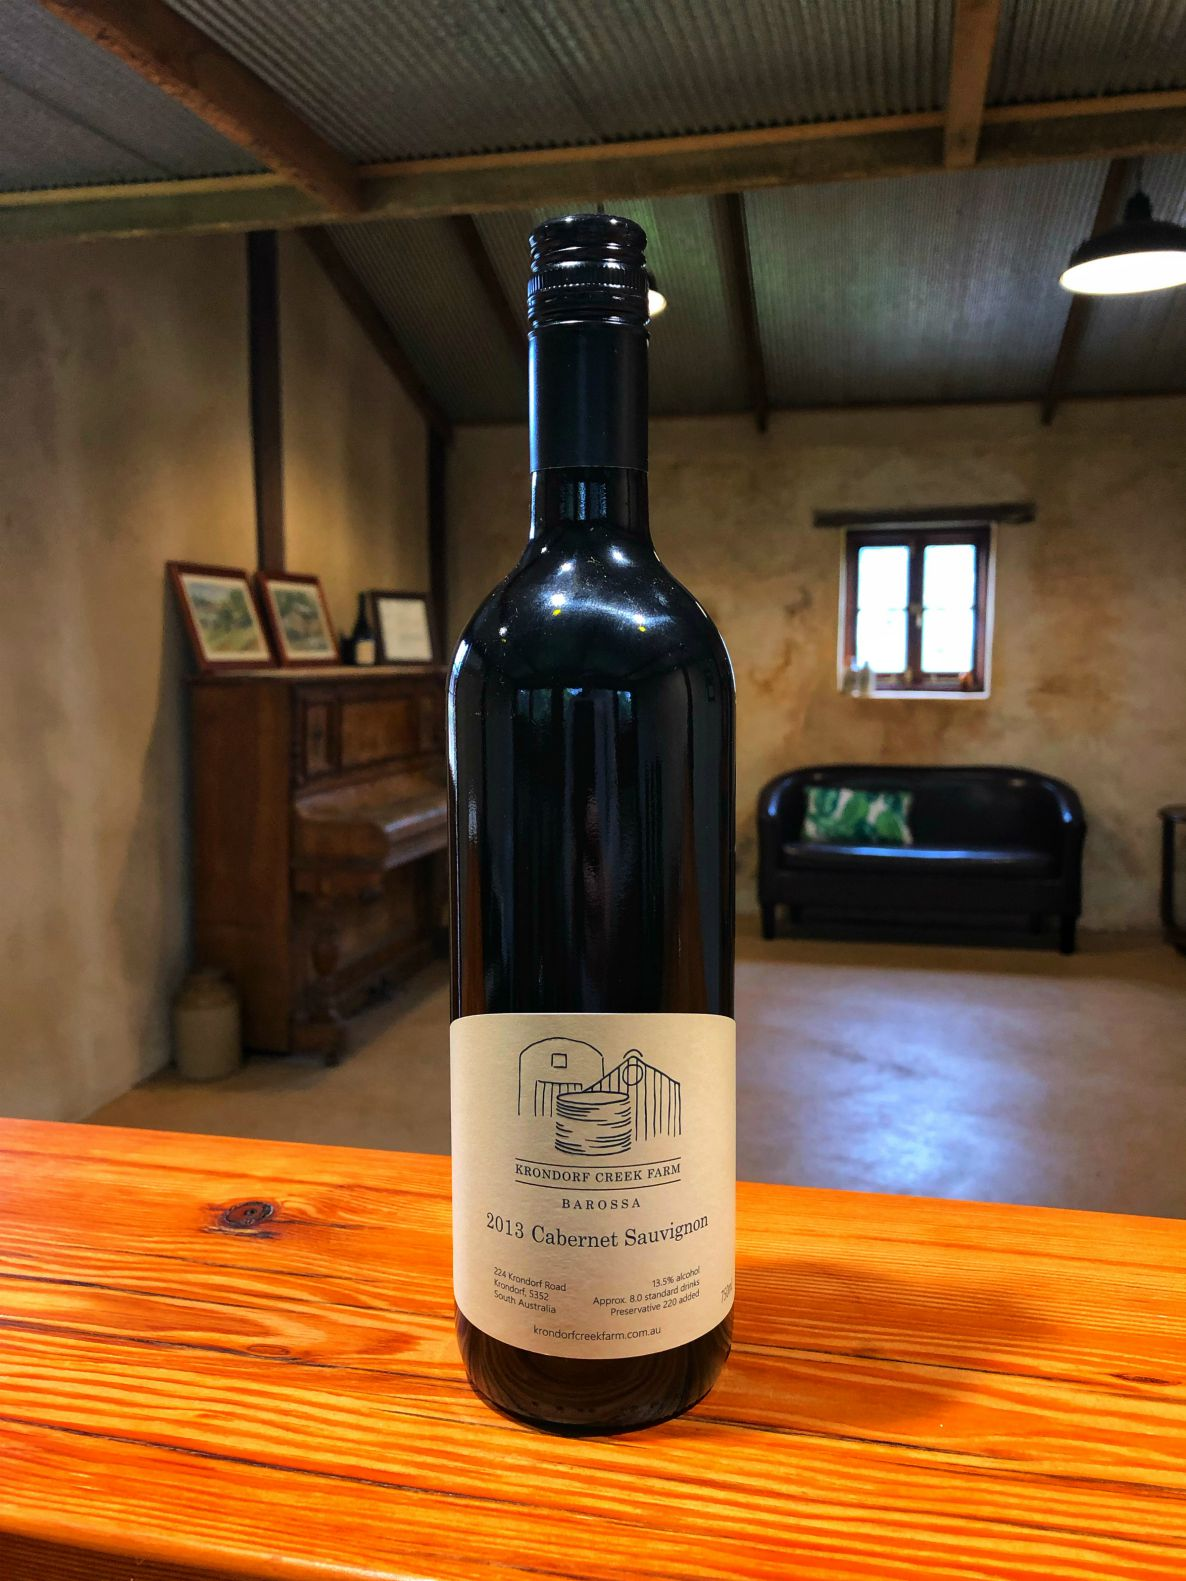 Our Museum Release - One of the hallmarks of Krondorf Creek Farm is that quite some years before we opened Cellar Door, we started putting wine away in our Cellar, with a view to one day having a perpetual collection of aged wines we could release to our guests and customers.Every year since 2012 we've made a parcel or two of fruit into a special wine, and then tucked it away in the old butcher's cellar that sits underneath one of the stone cottages on the property.From this treasure box Cellar, each year we have the particular pleasure of pulling up a bottle of every wine we've ever made and having a gander. Some trusted friends and family get an invitation, there's usually some pizza and it's a great night of reflection, albeit with a serious side. This is when we decide which wine will be labelled as our Museum Release for the coming year and available to our guests through Cellar Door.This year we are delighted to introduce our 2013 Cabernet Sauvignon as our Museum Release. It's a wonderful testament to the old adage that